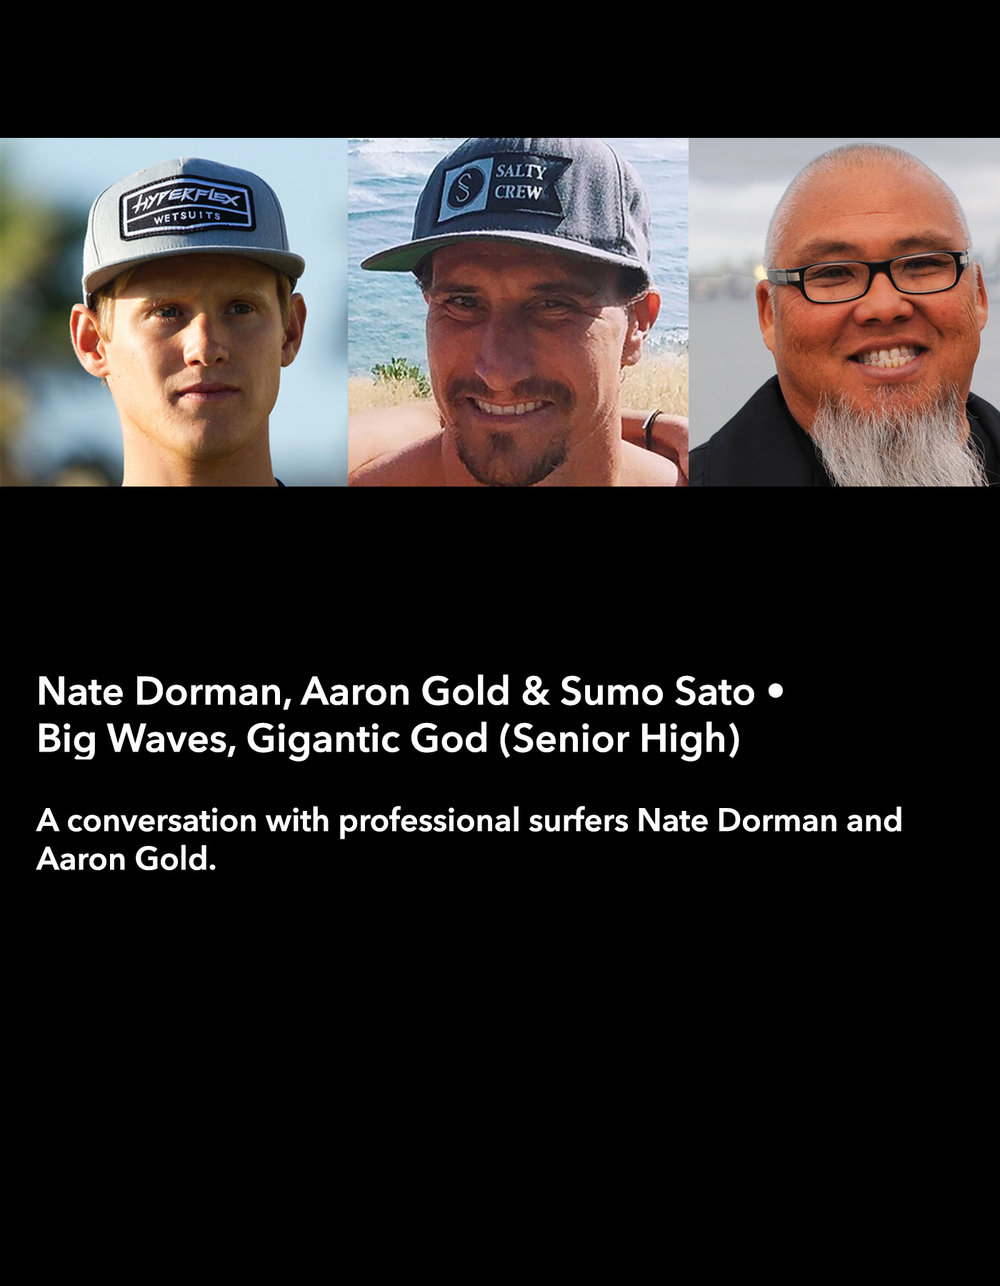 Nate Dorman, Aaron Gold & Sumo Sato • Big Waves, Gigantic God (Senior High) [Y] • Saturday Morning, March 18 • 10:30 – 11:45 am